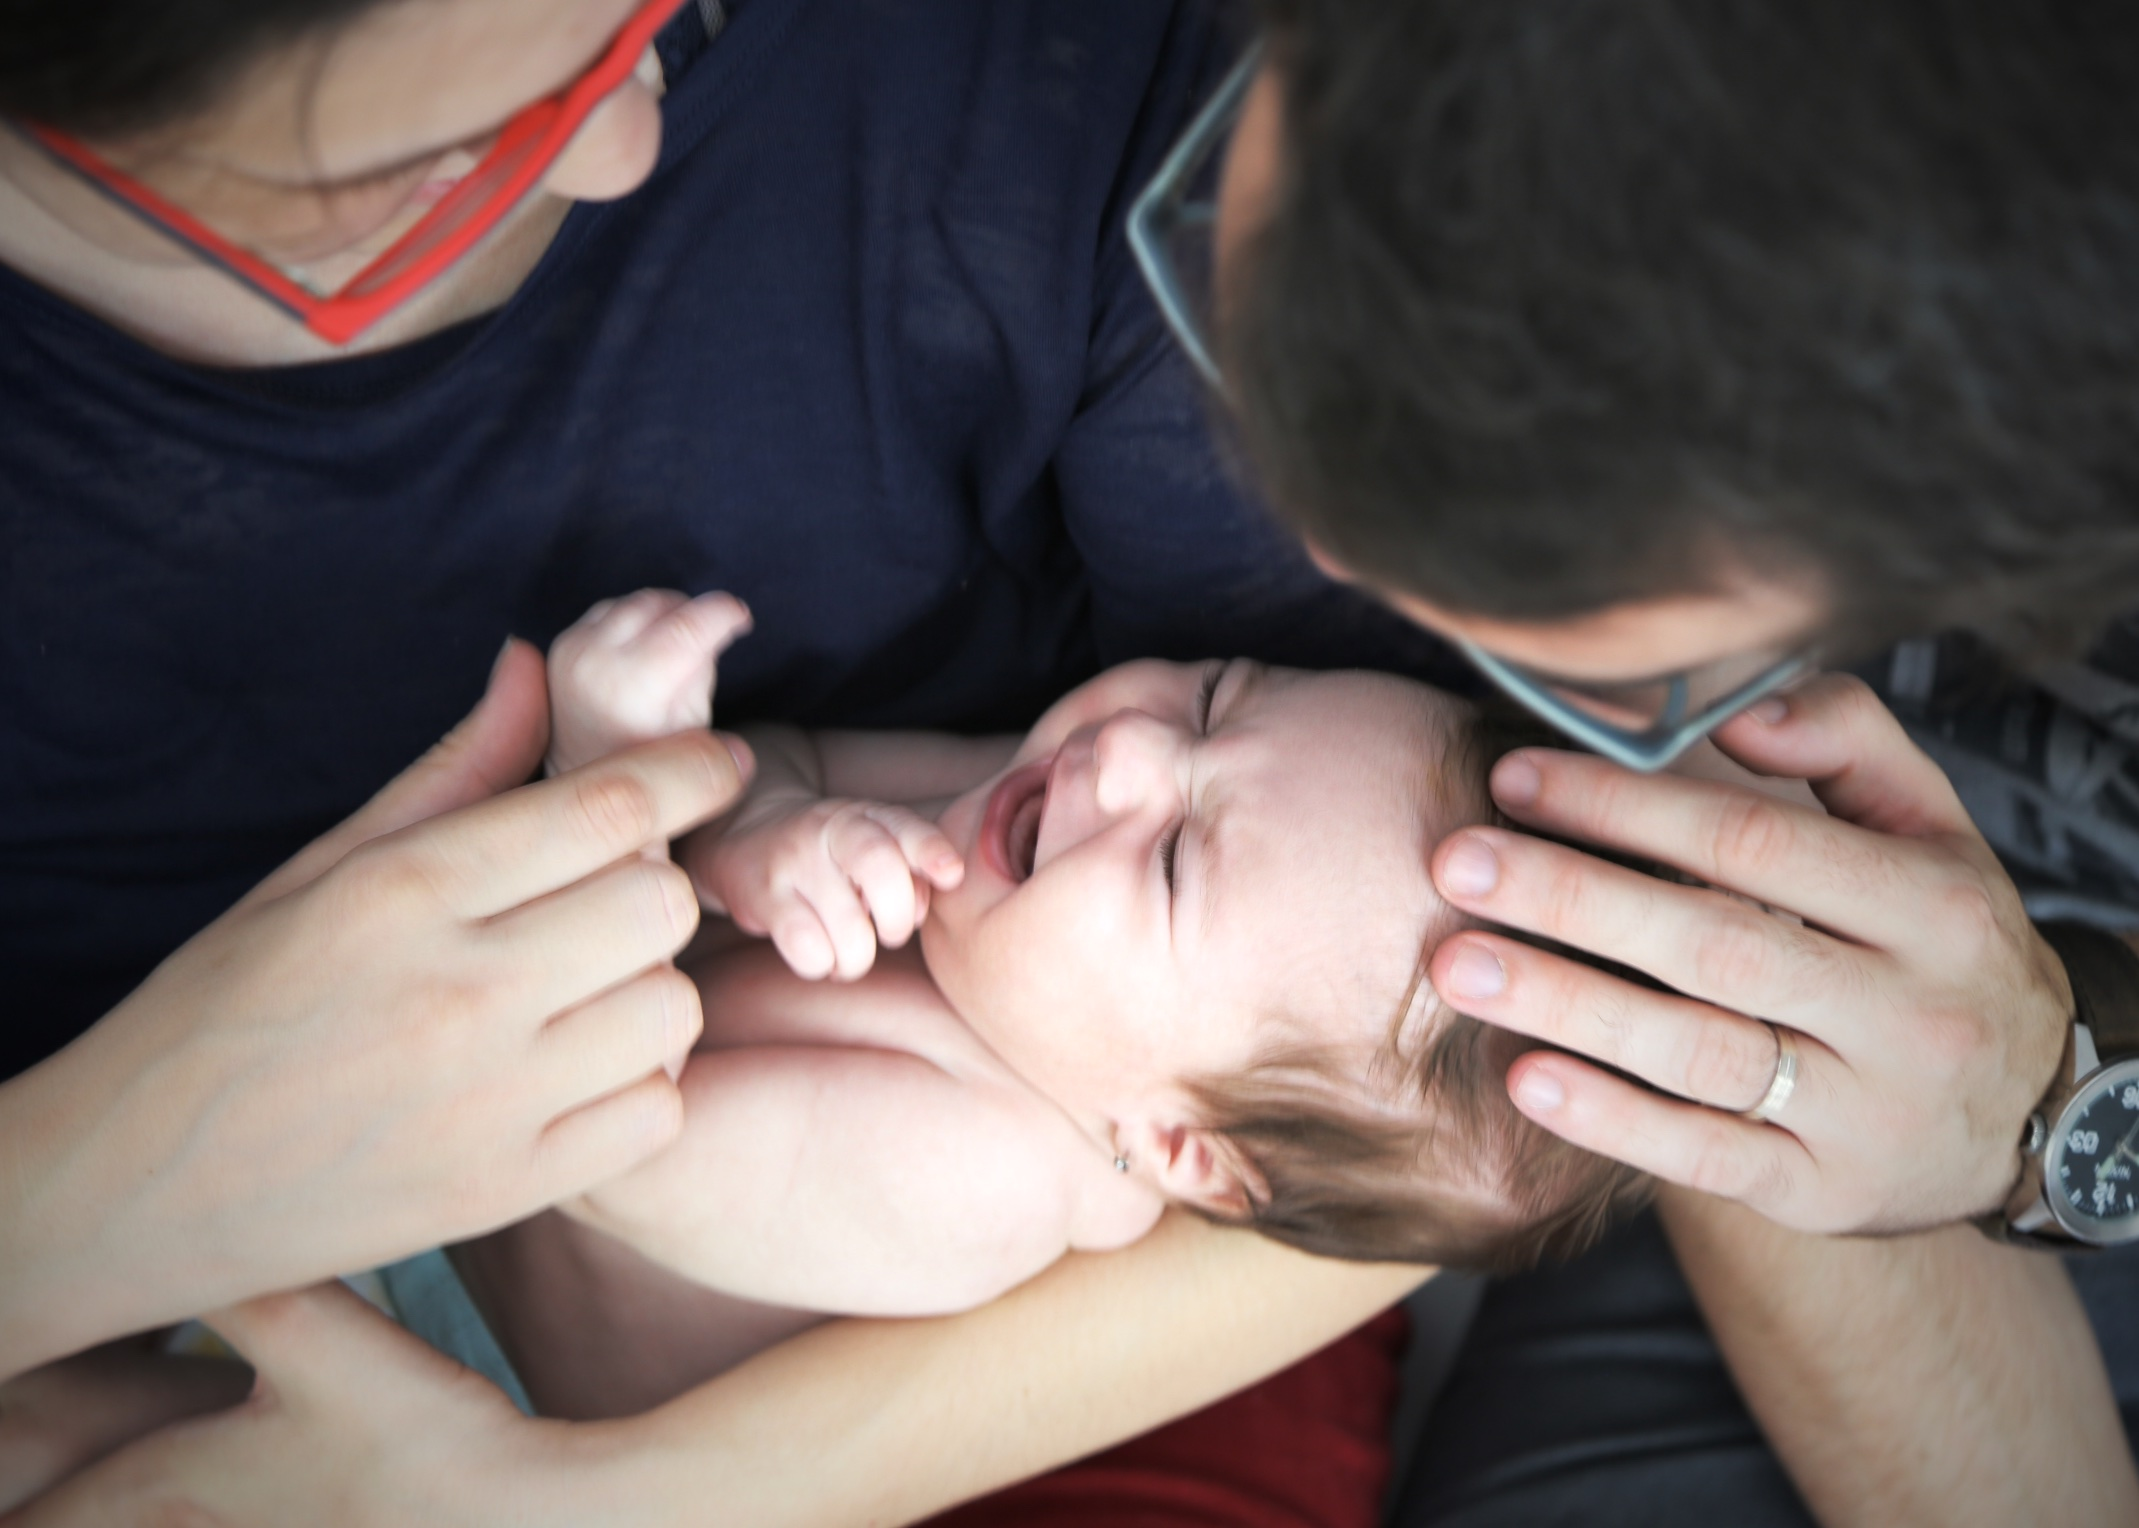 How to act if my baby has colic?